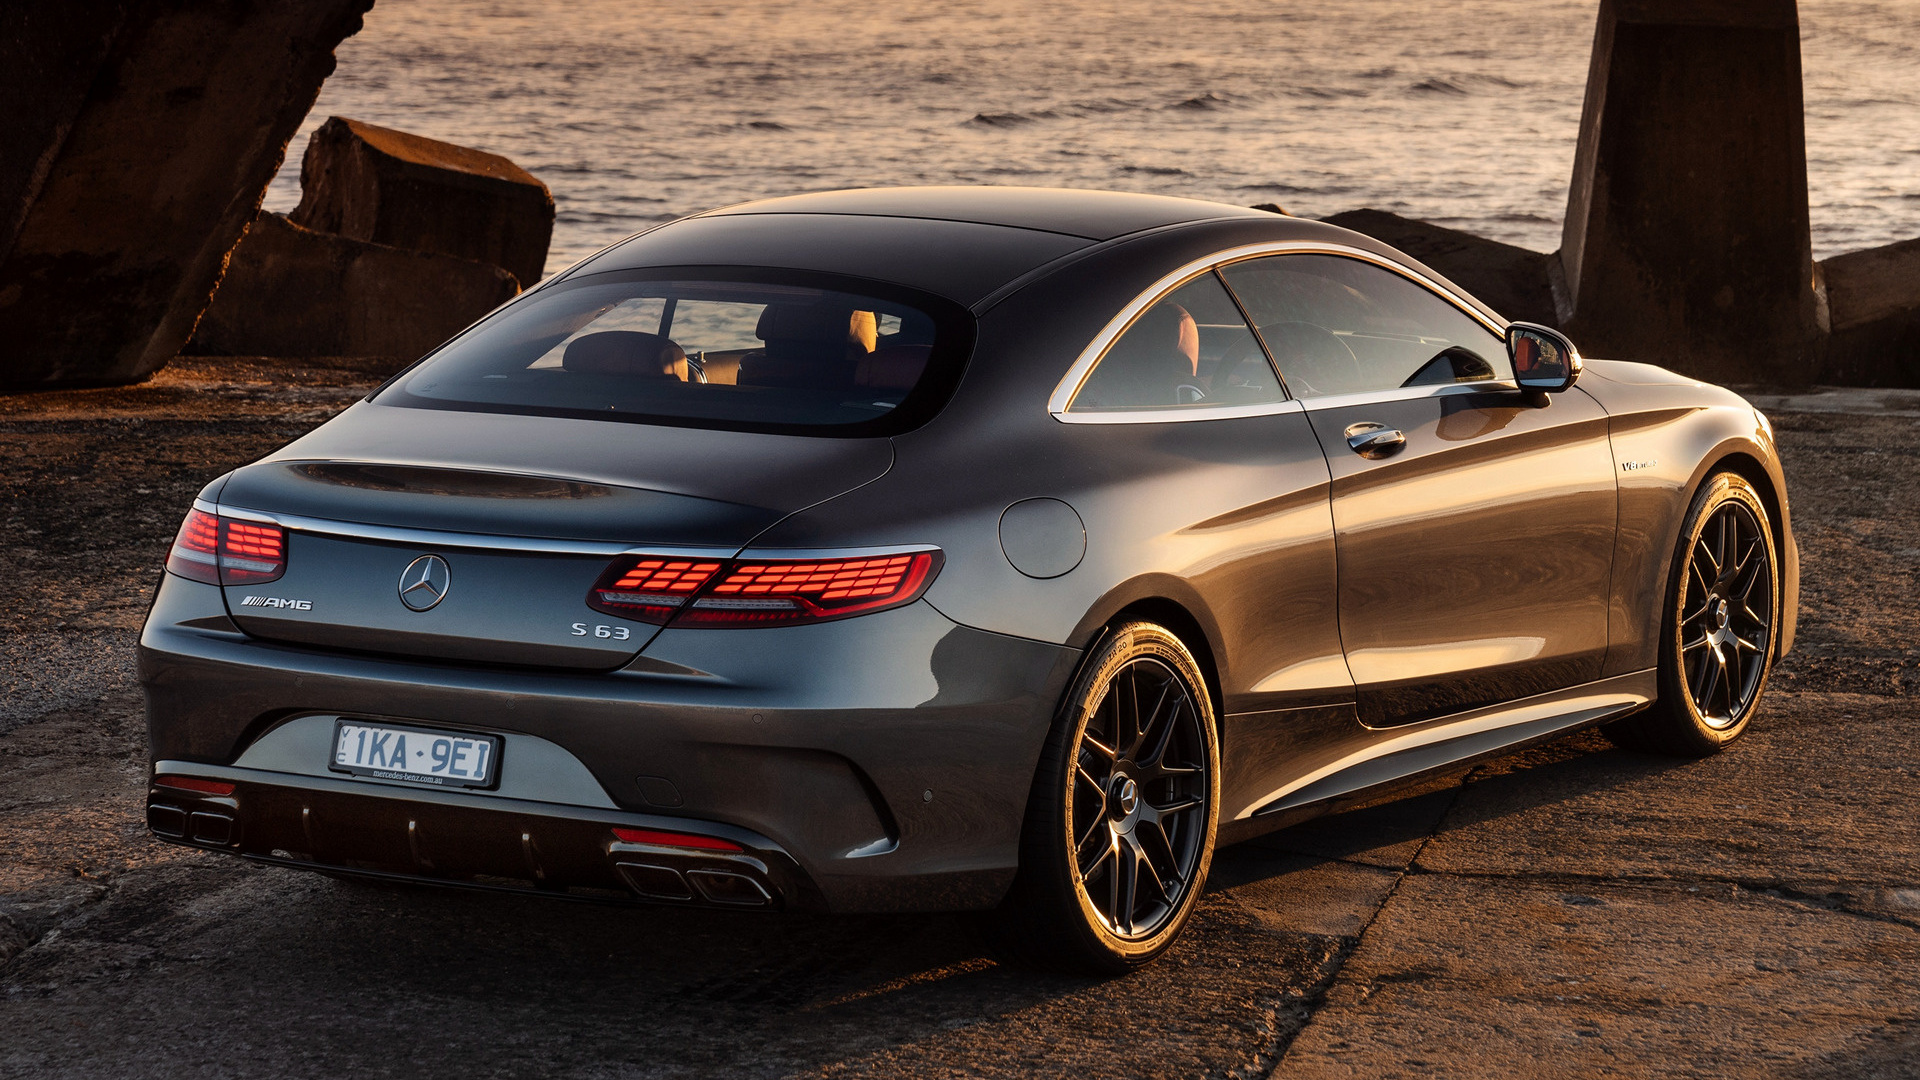 amg mercedes 63 coupe hd wallpapers s63 benz background